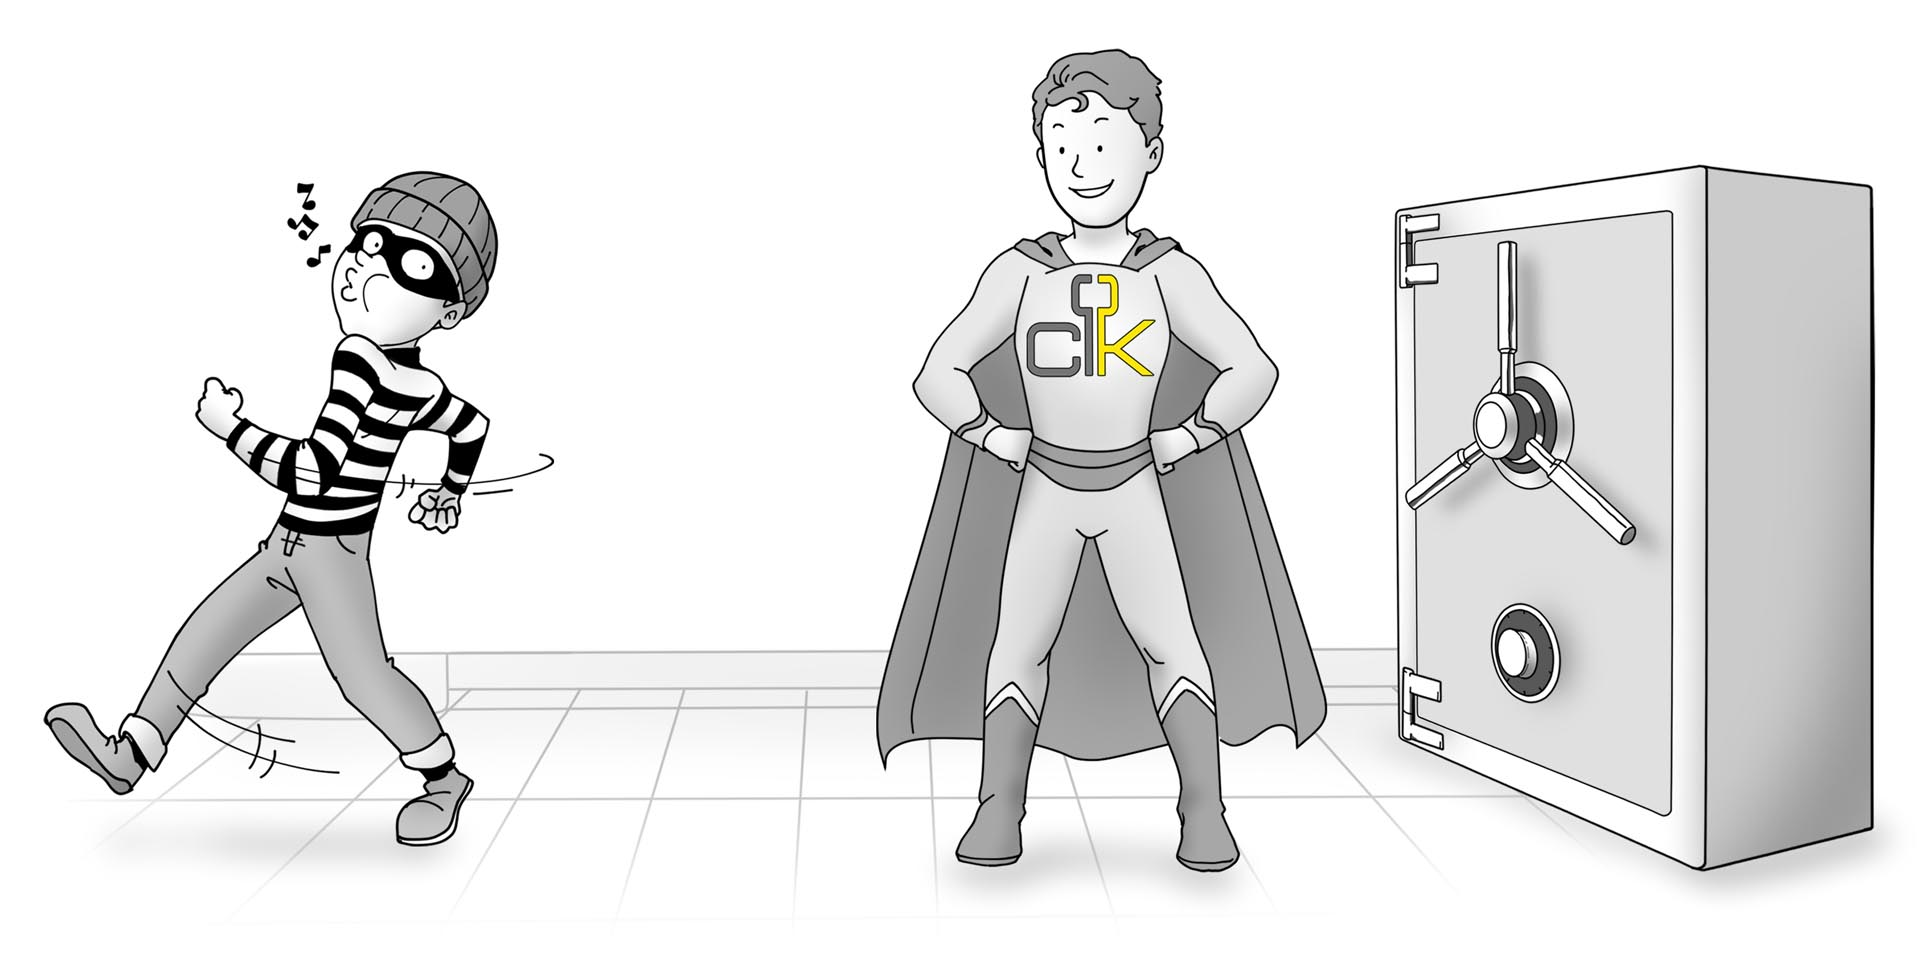 A burglar sees a Channel Key superhero protecting a vault and turns around.